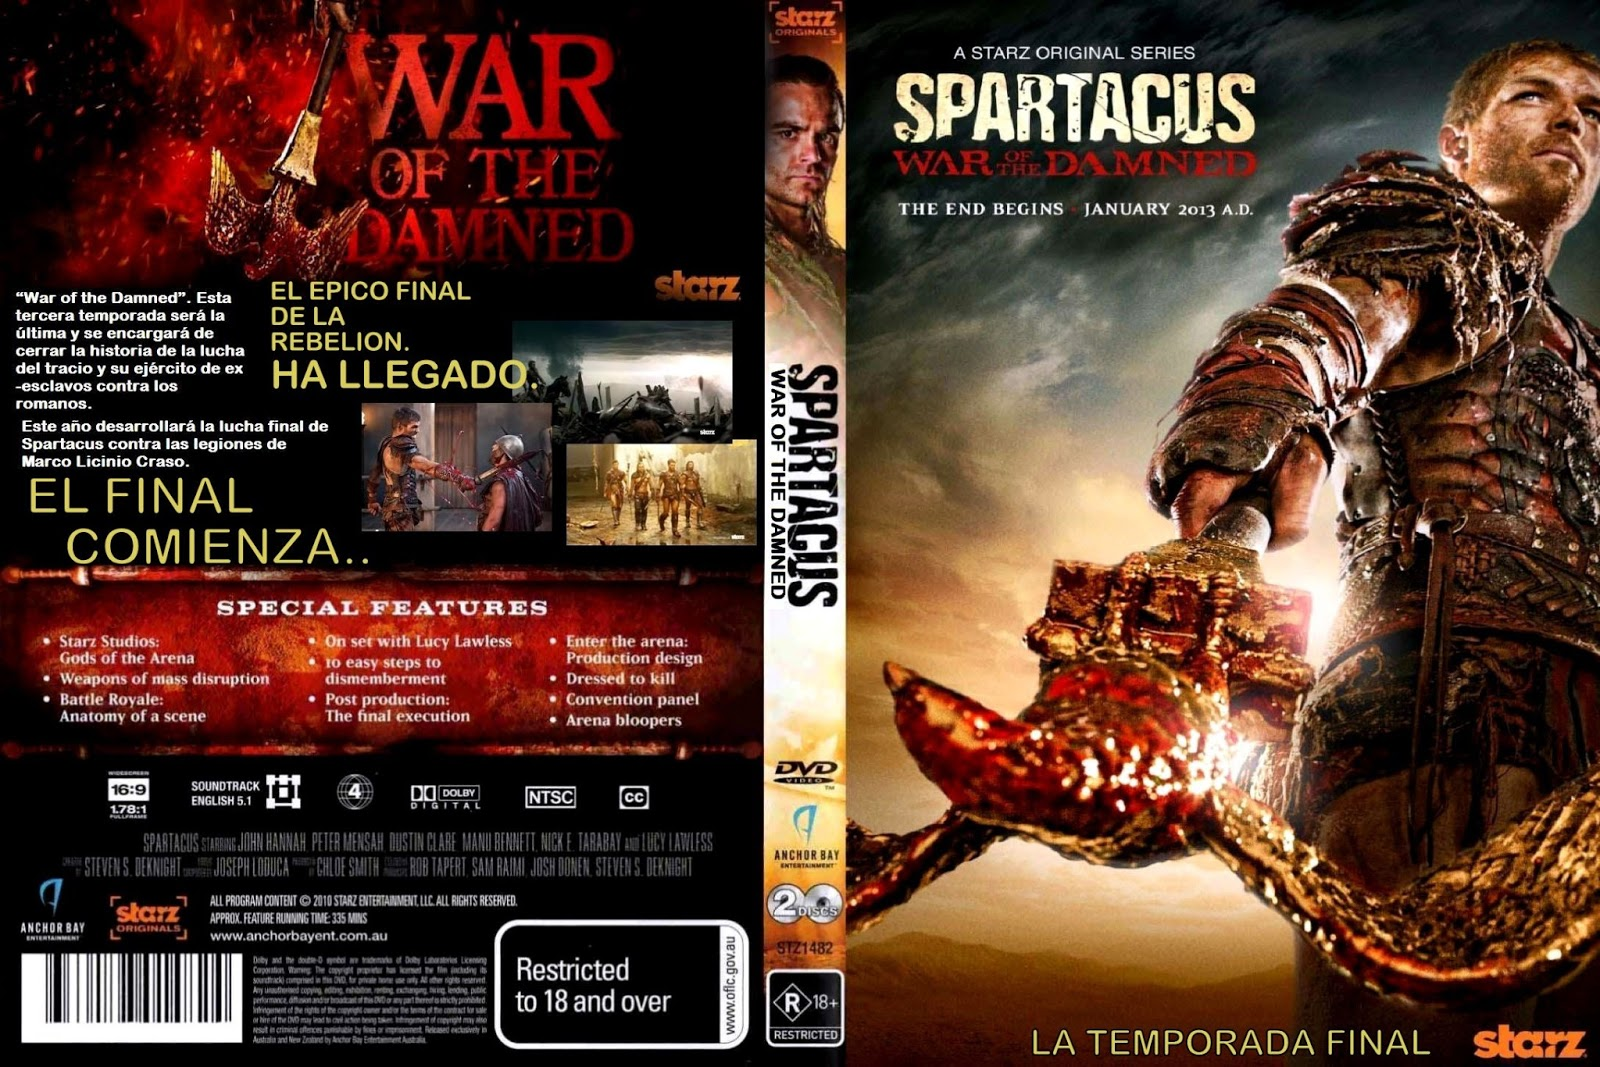 MATANZAS ÉPICAS EN LA TEMPORADA 4 DE SPARTACUS: \'WAR OF THE DAMNED ...